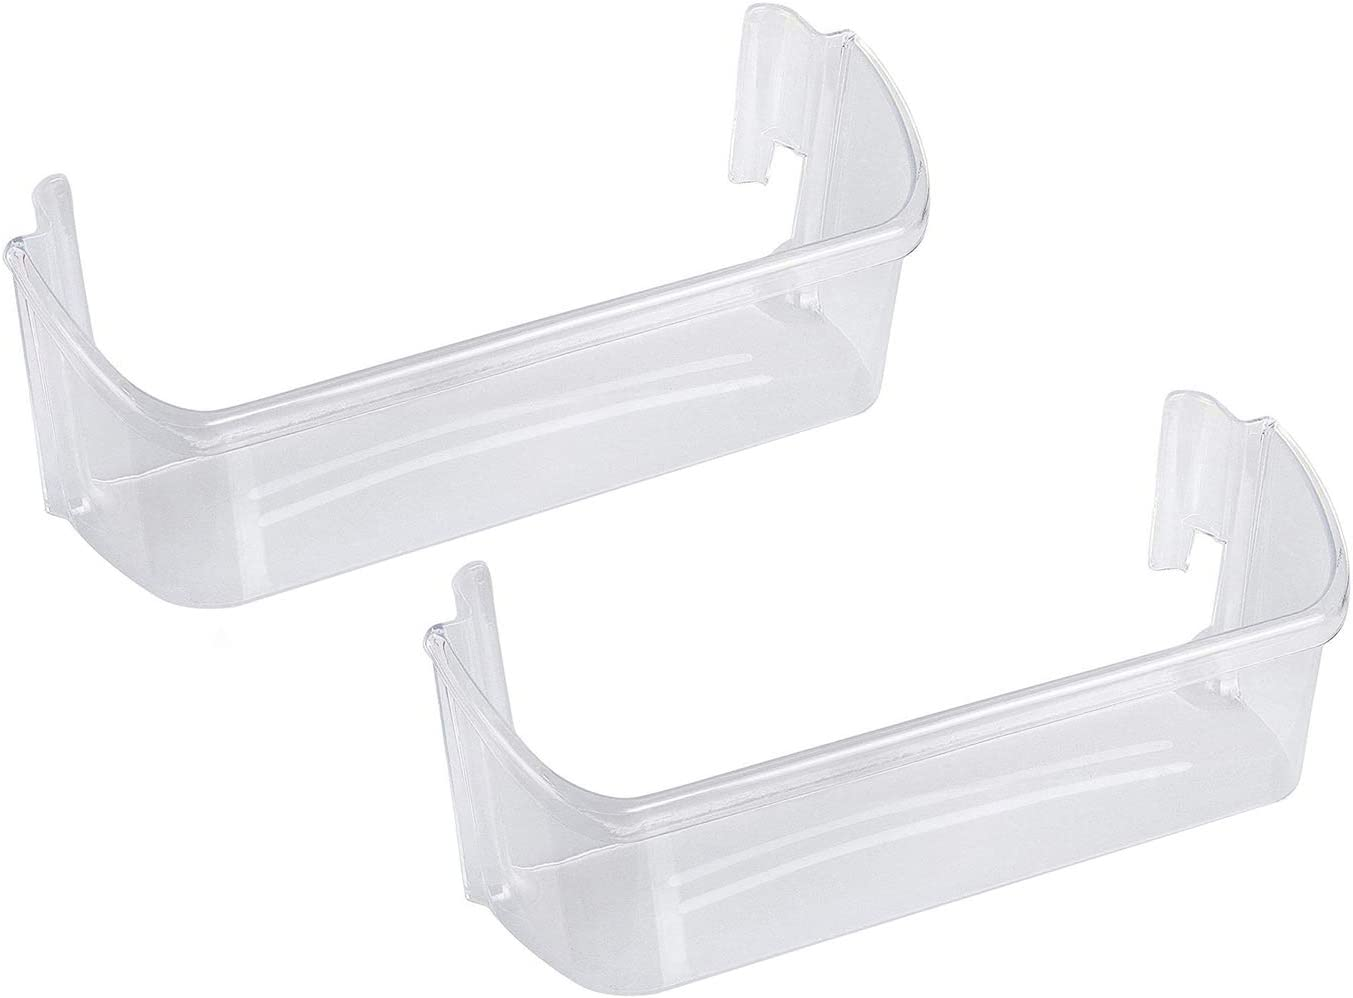 Ecumfy (Pack of 2) 240323002 Door Bin Shelf Compatible with Frigidaire Electrolux Refrigerator Replaces 240323005, 240323006, 240323009, AP2115742, PS429725